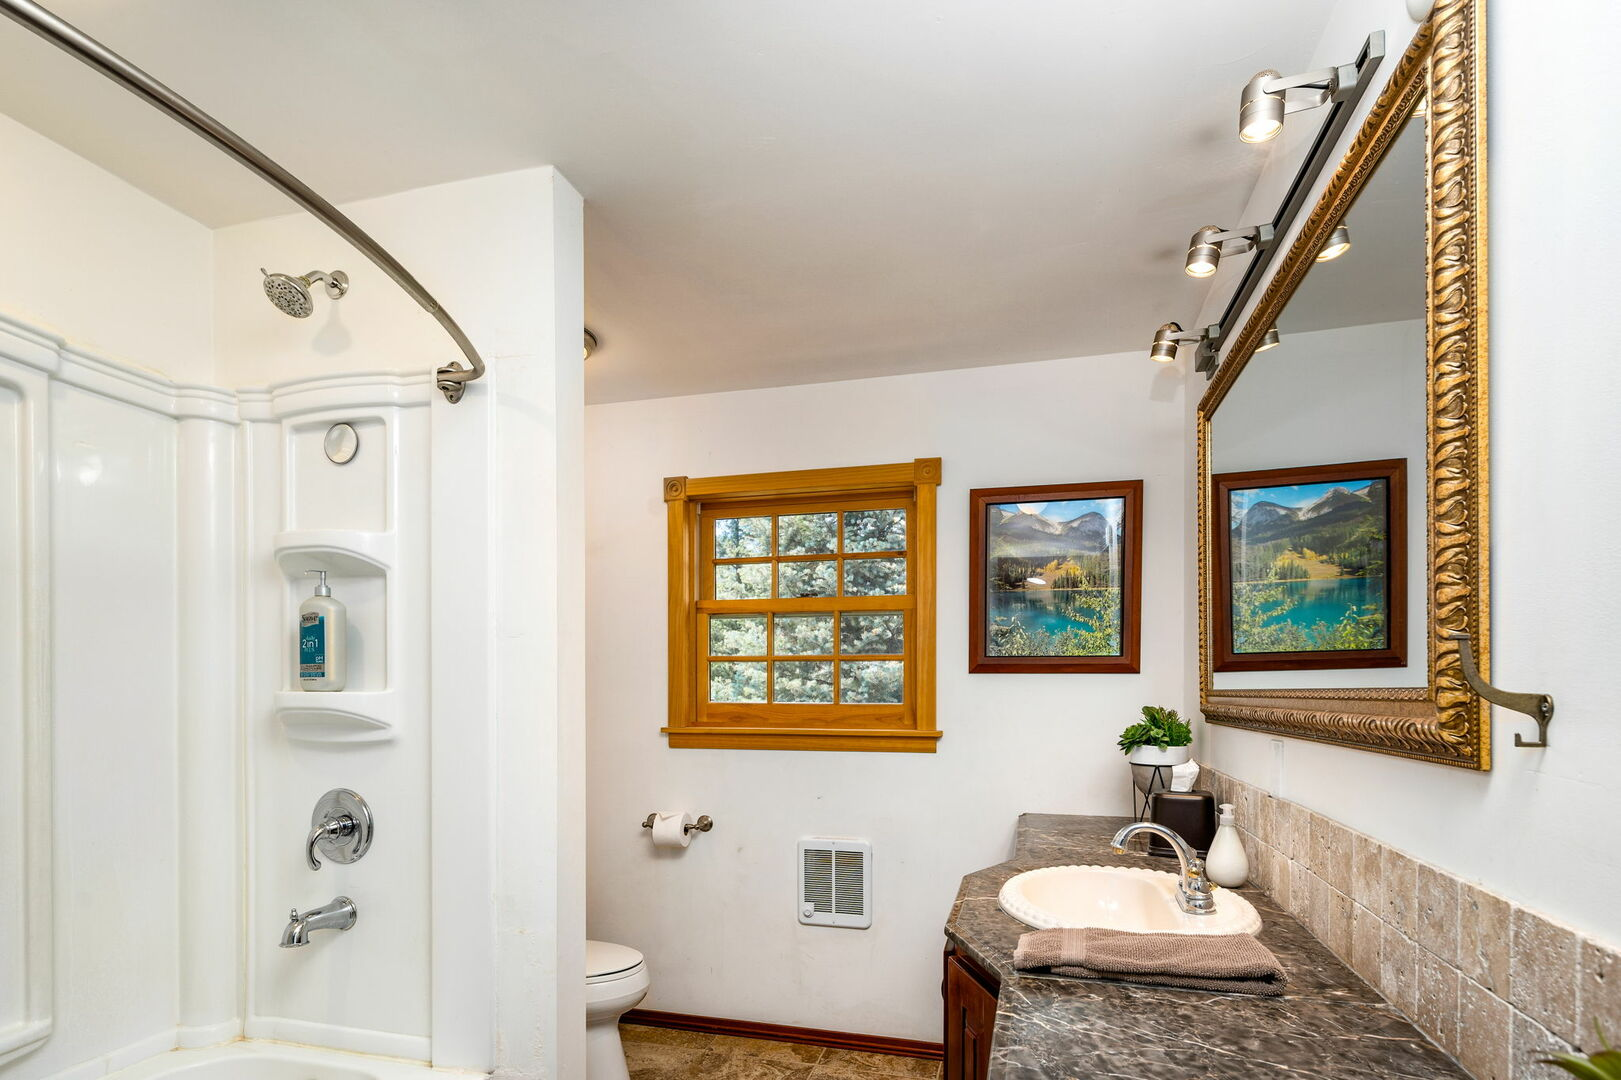 Full bathroom located on main level shared between main level bedrooms.